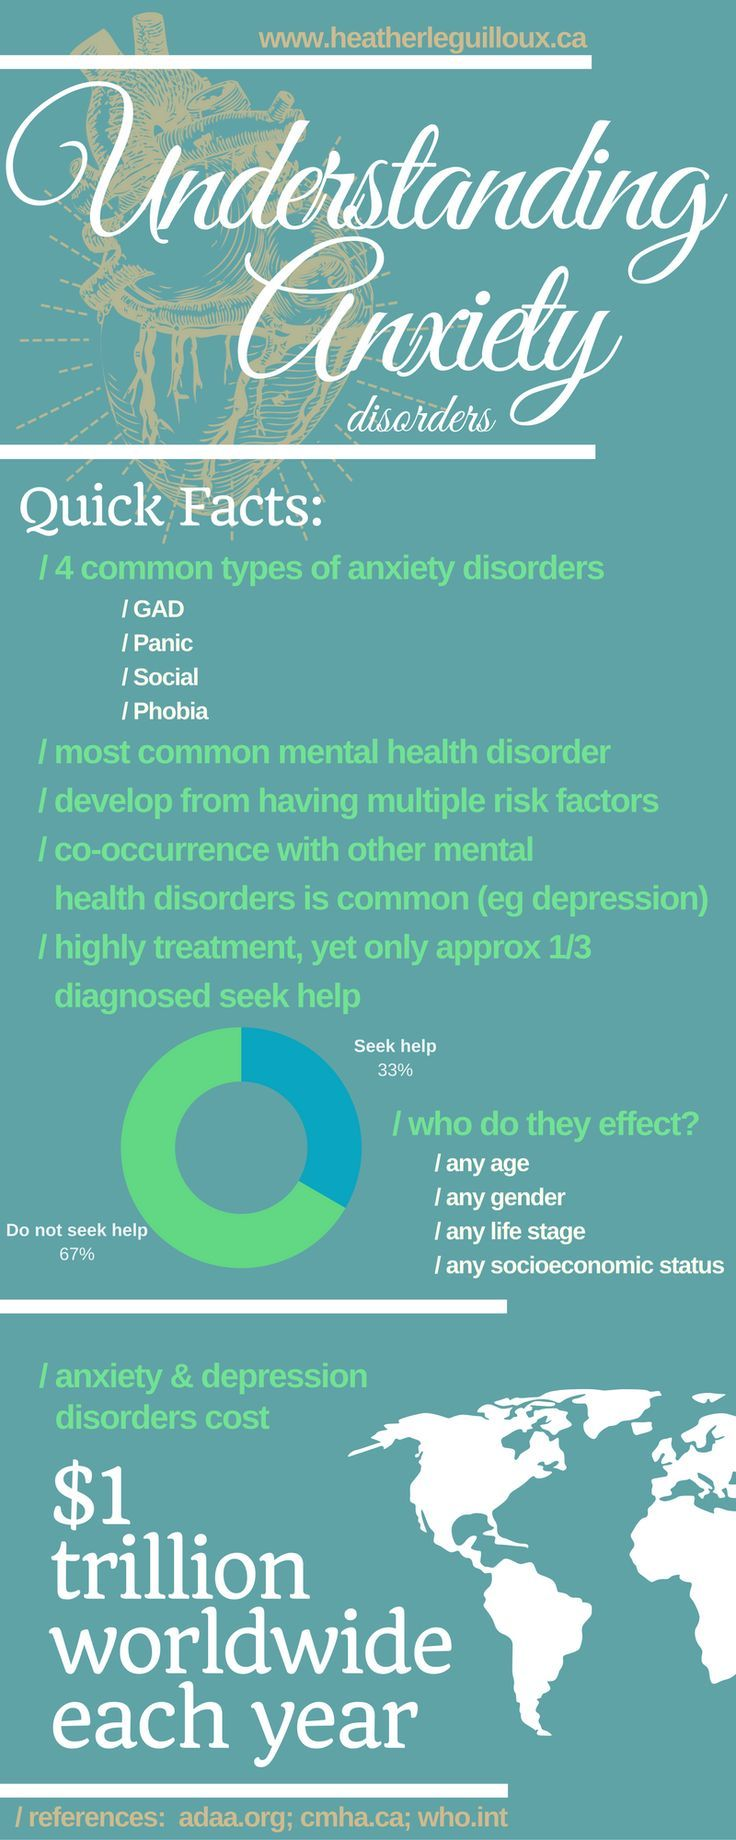 This is a fantastic infographic about anxiety. Anxiety is a co-morbid disorder with ADHD and ADD. Anxiety affects women at a higher rate than men, it is important for us to understand the link between anxiety, ADHD and ADD